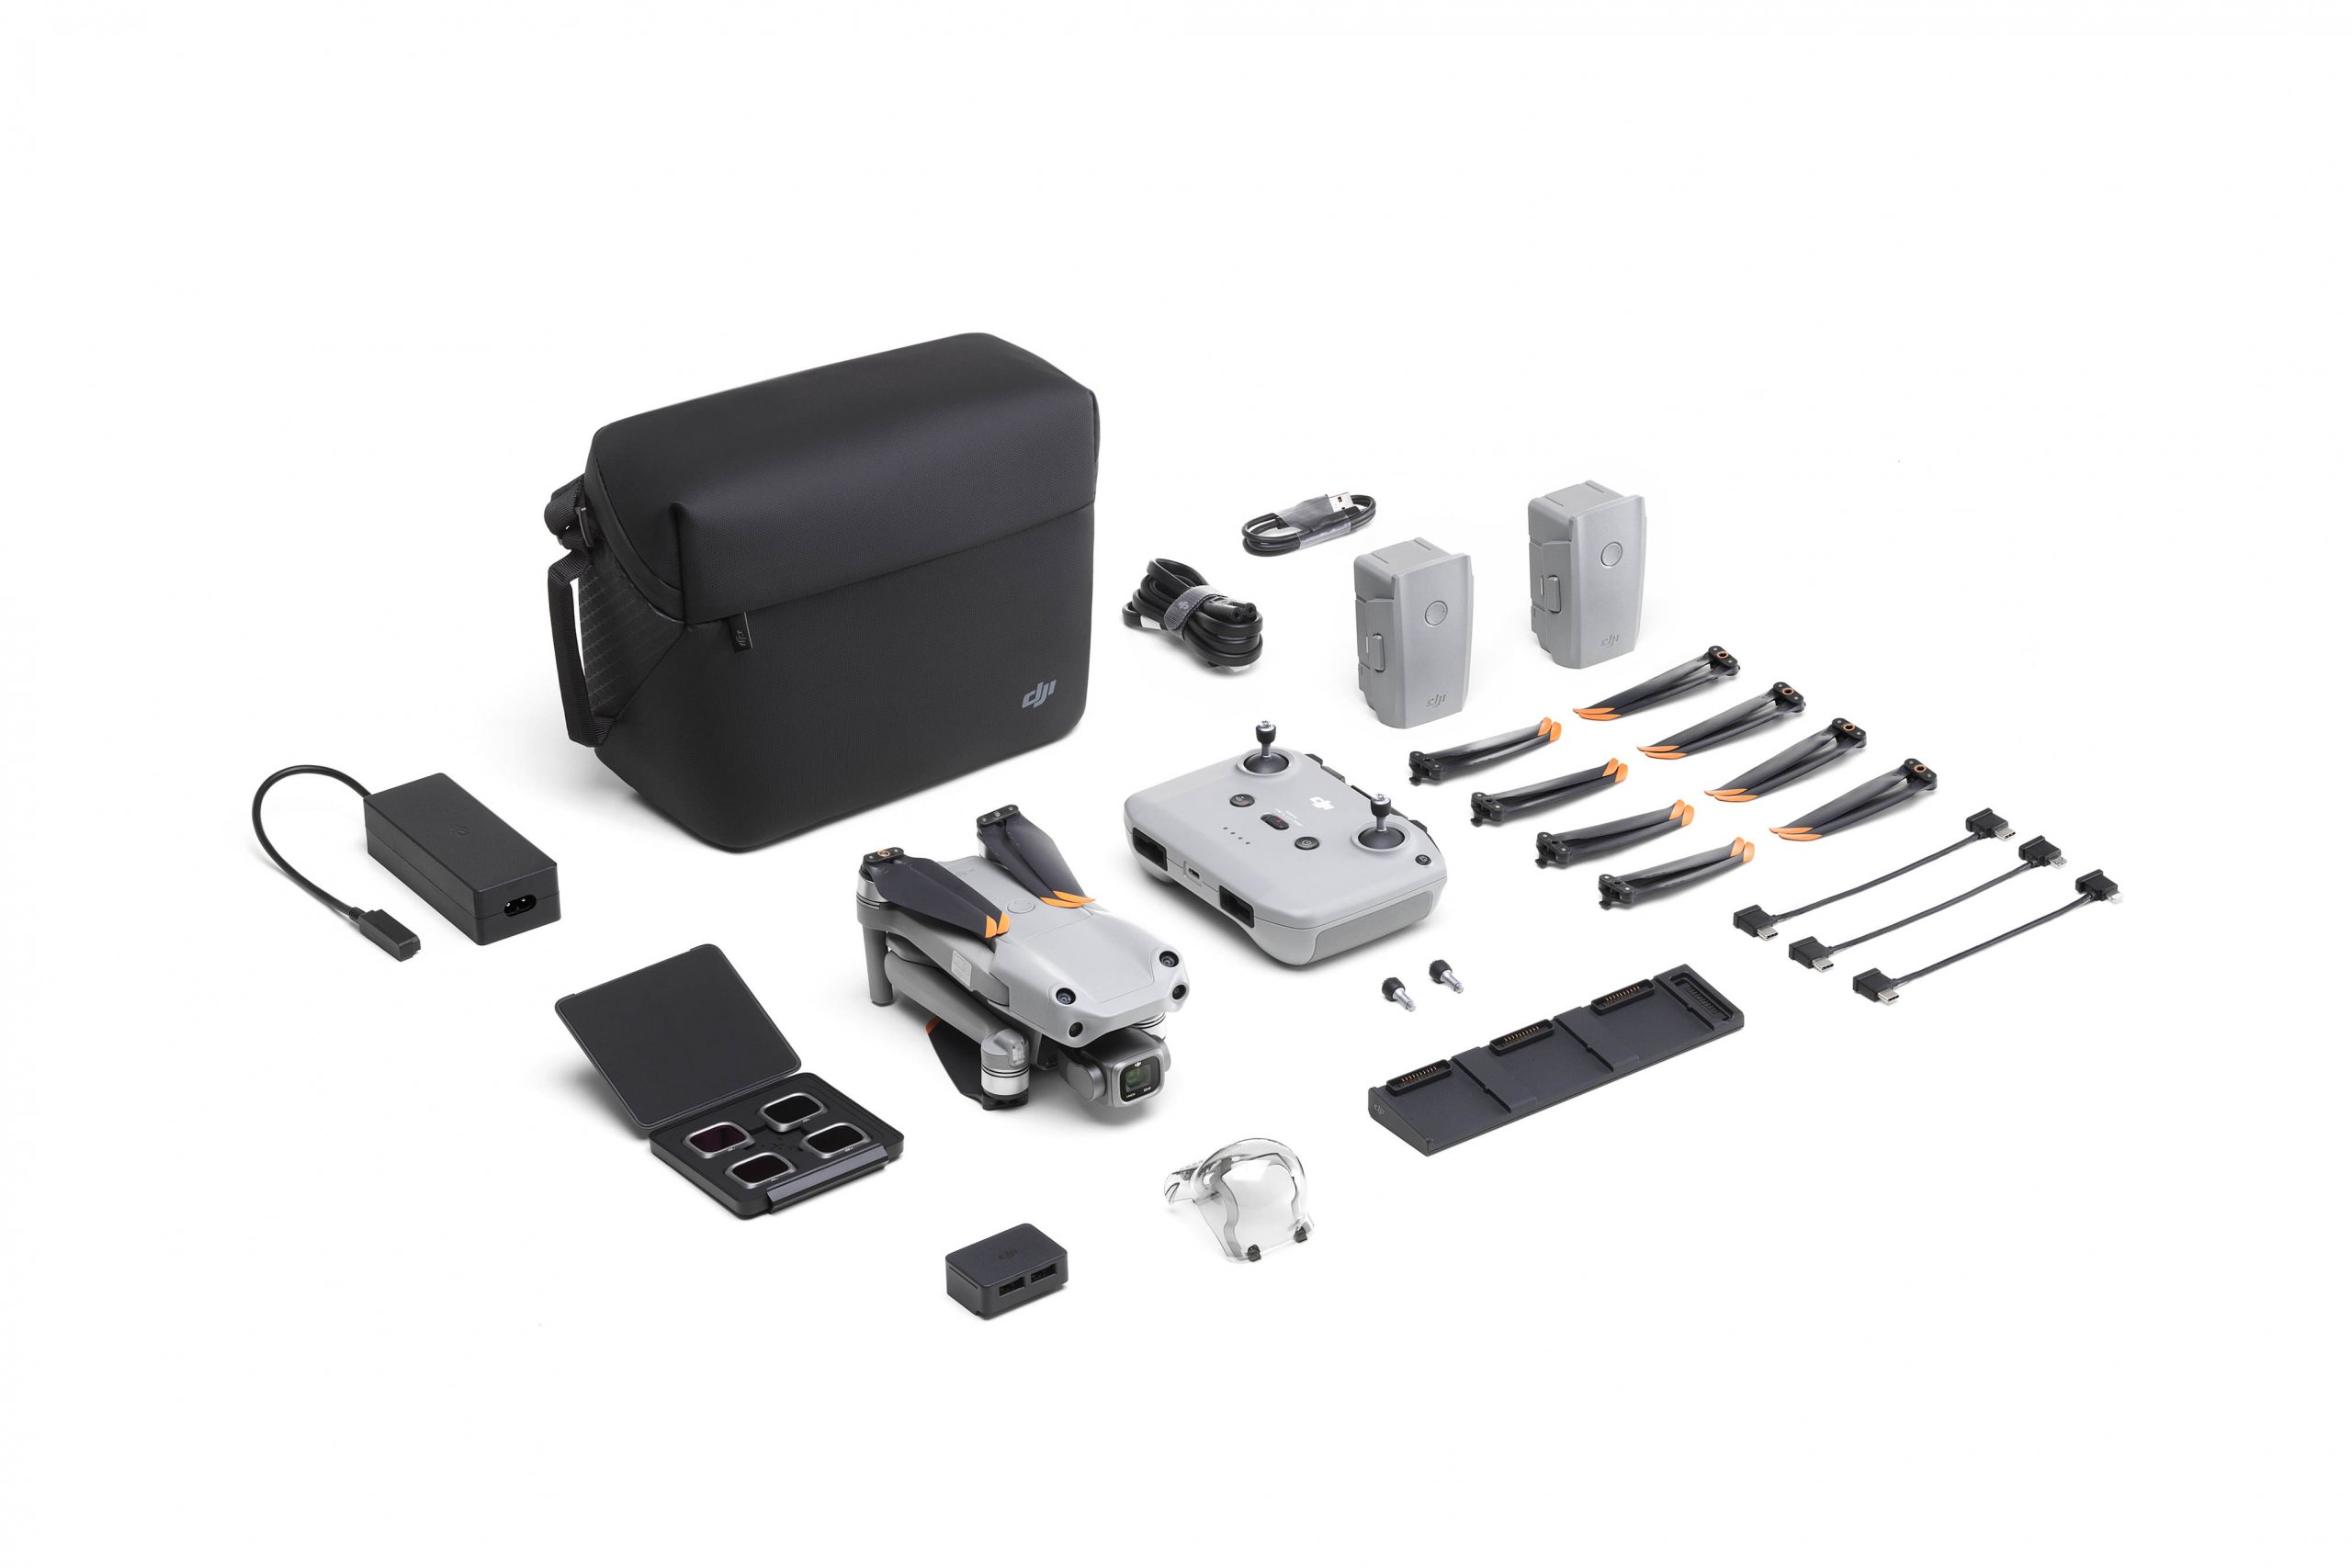 DJI AIR 2S Fly More Combo unboxing